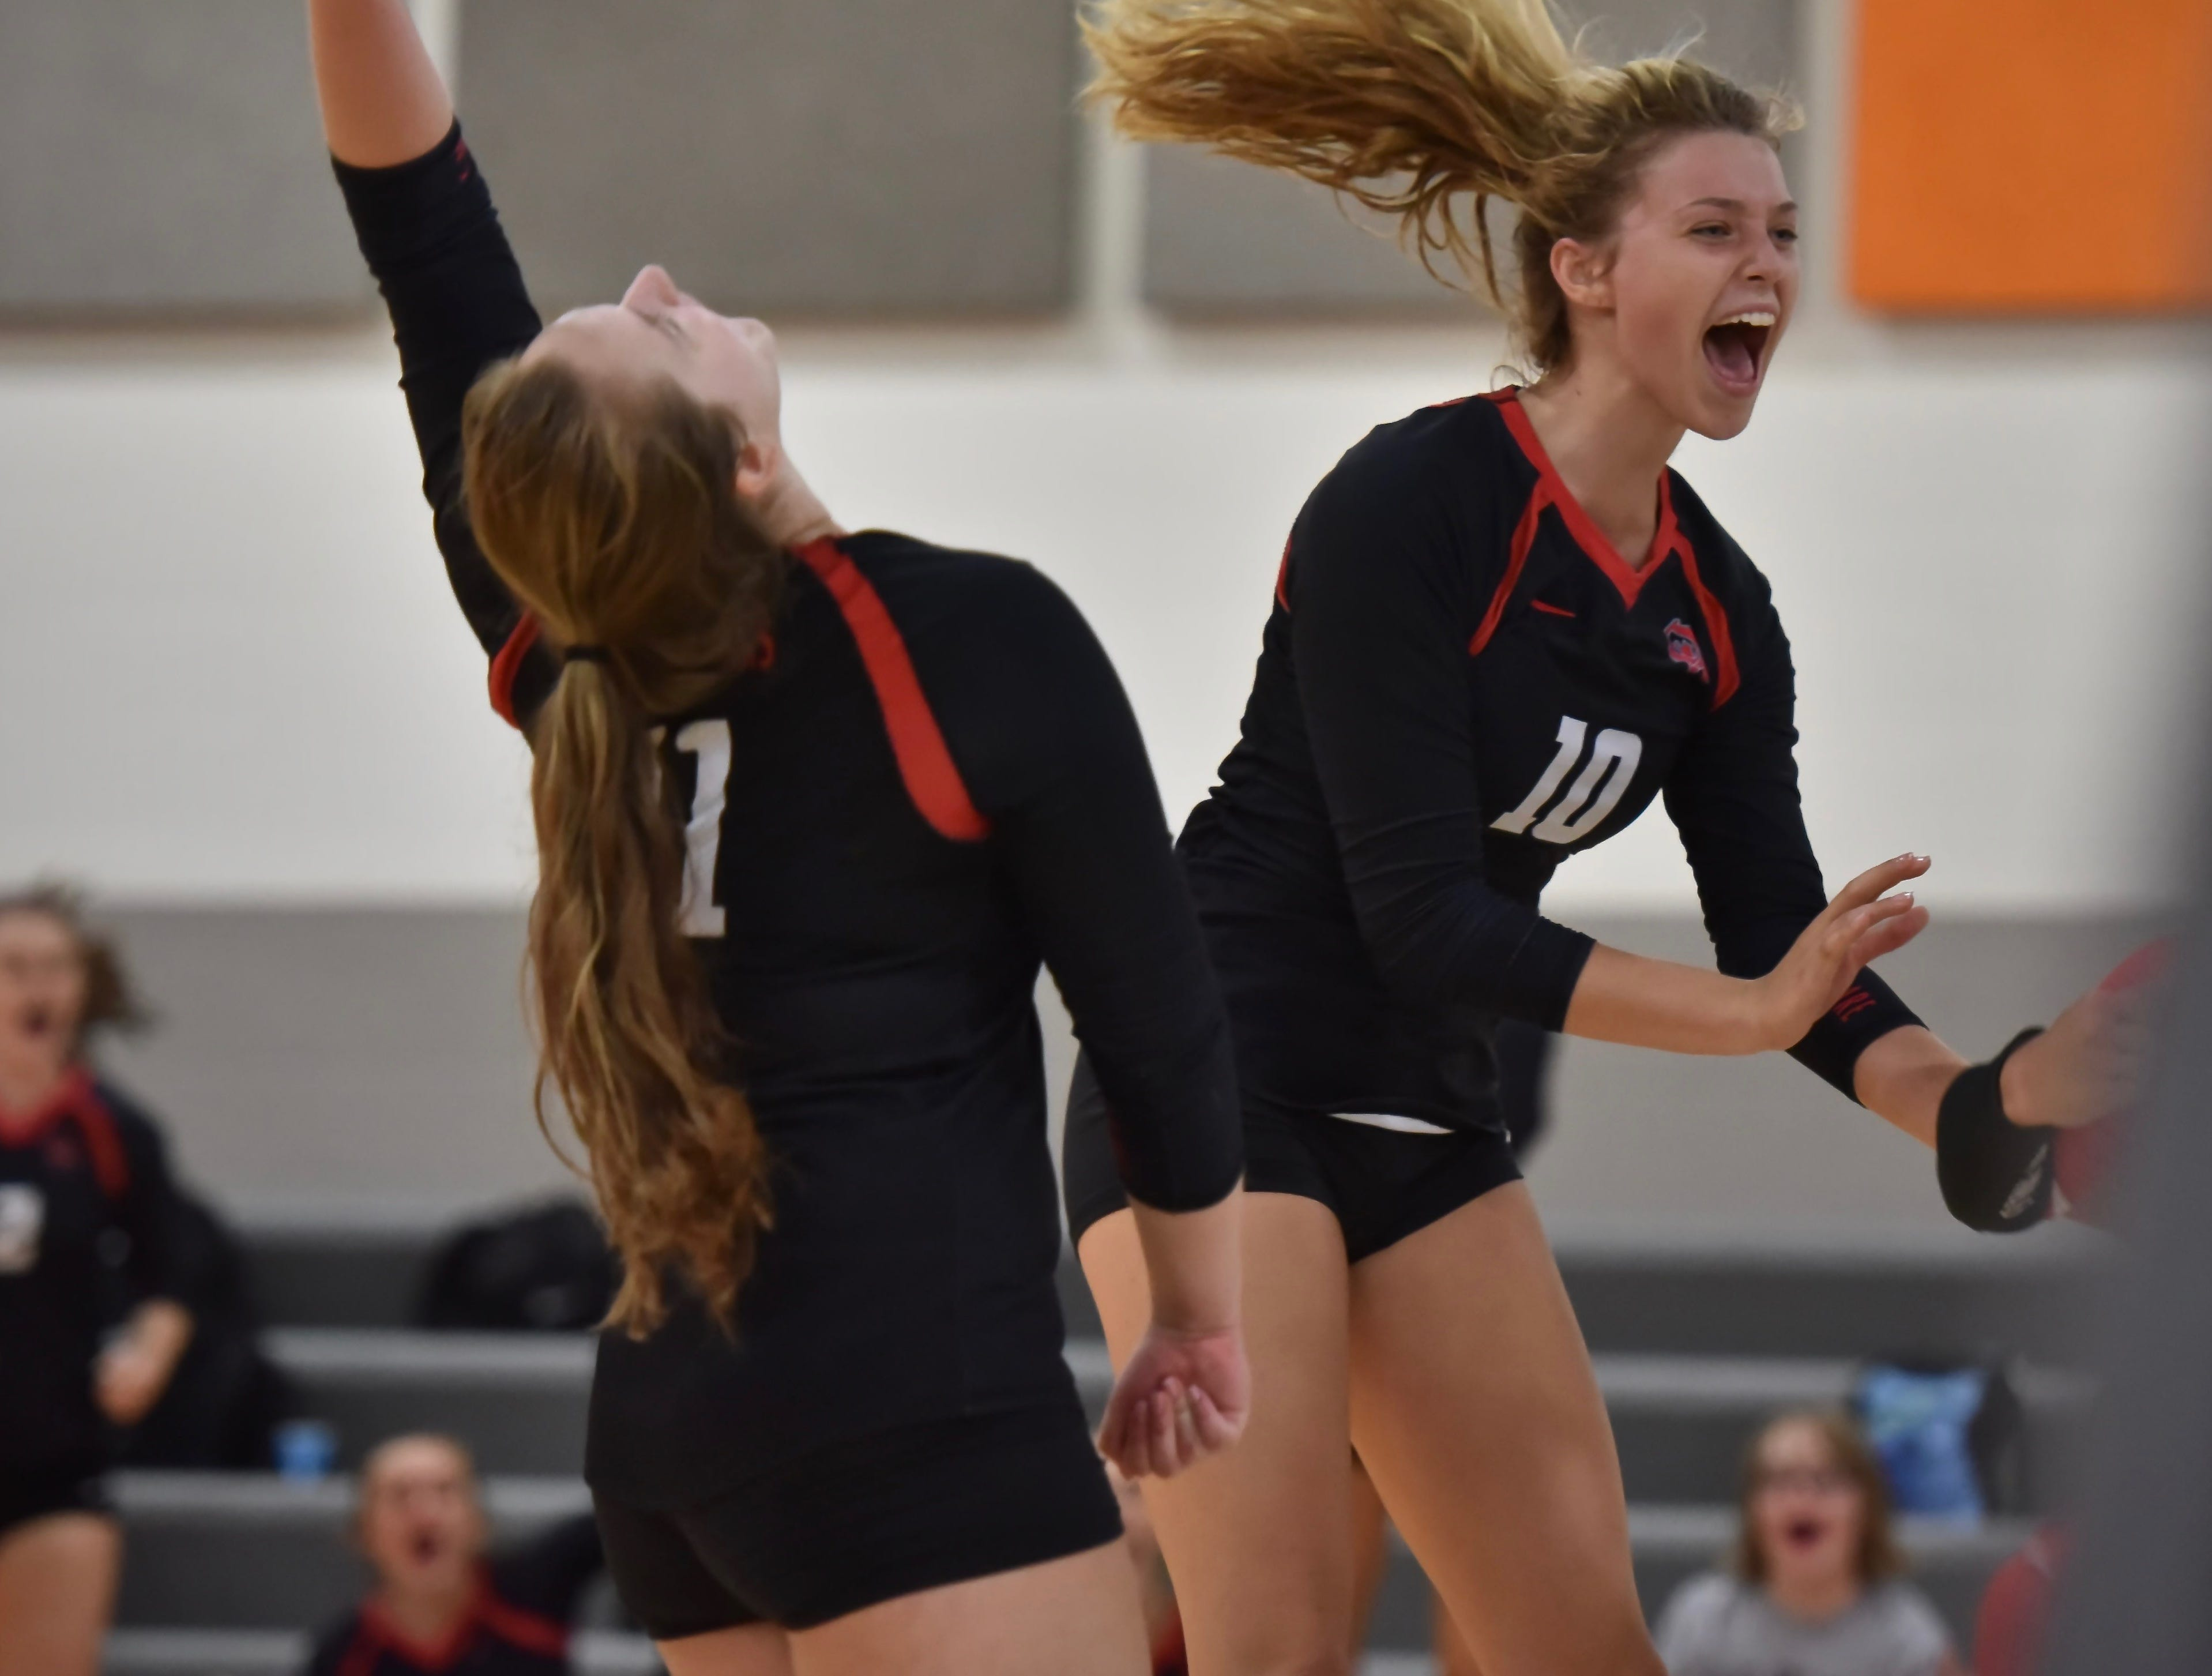 Oak Hills' Abigail Hulsman and Kasey Bryant celebrate the Highlanders first set victory over Mercy McAuley Tuesday, August 21st at Mercy McAuley High School